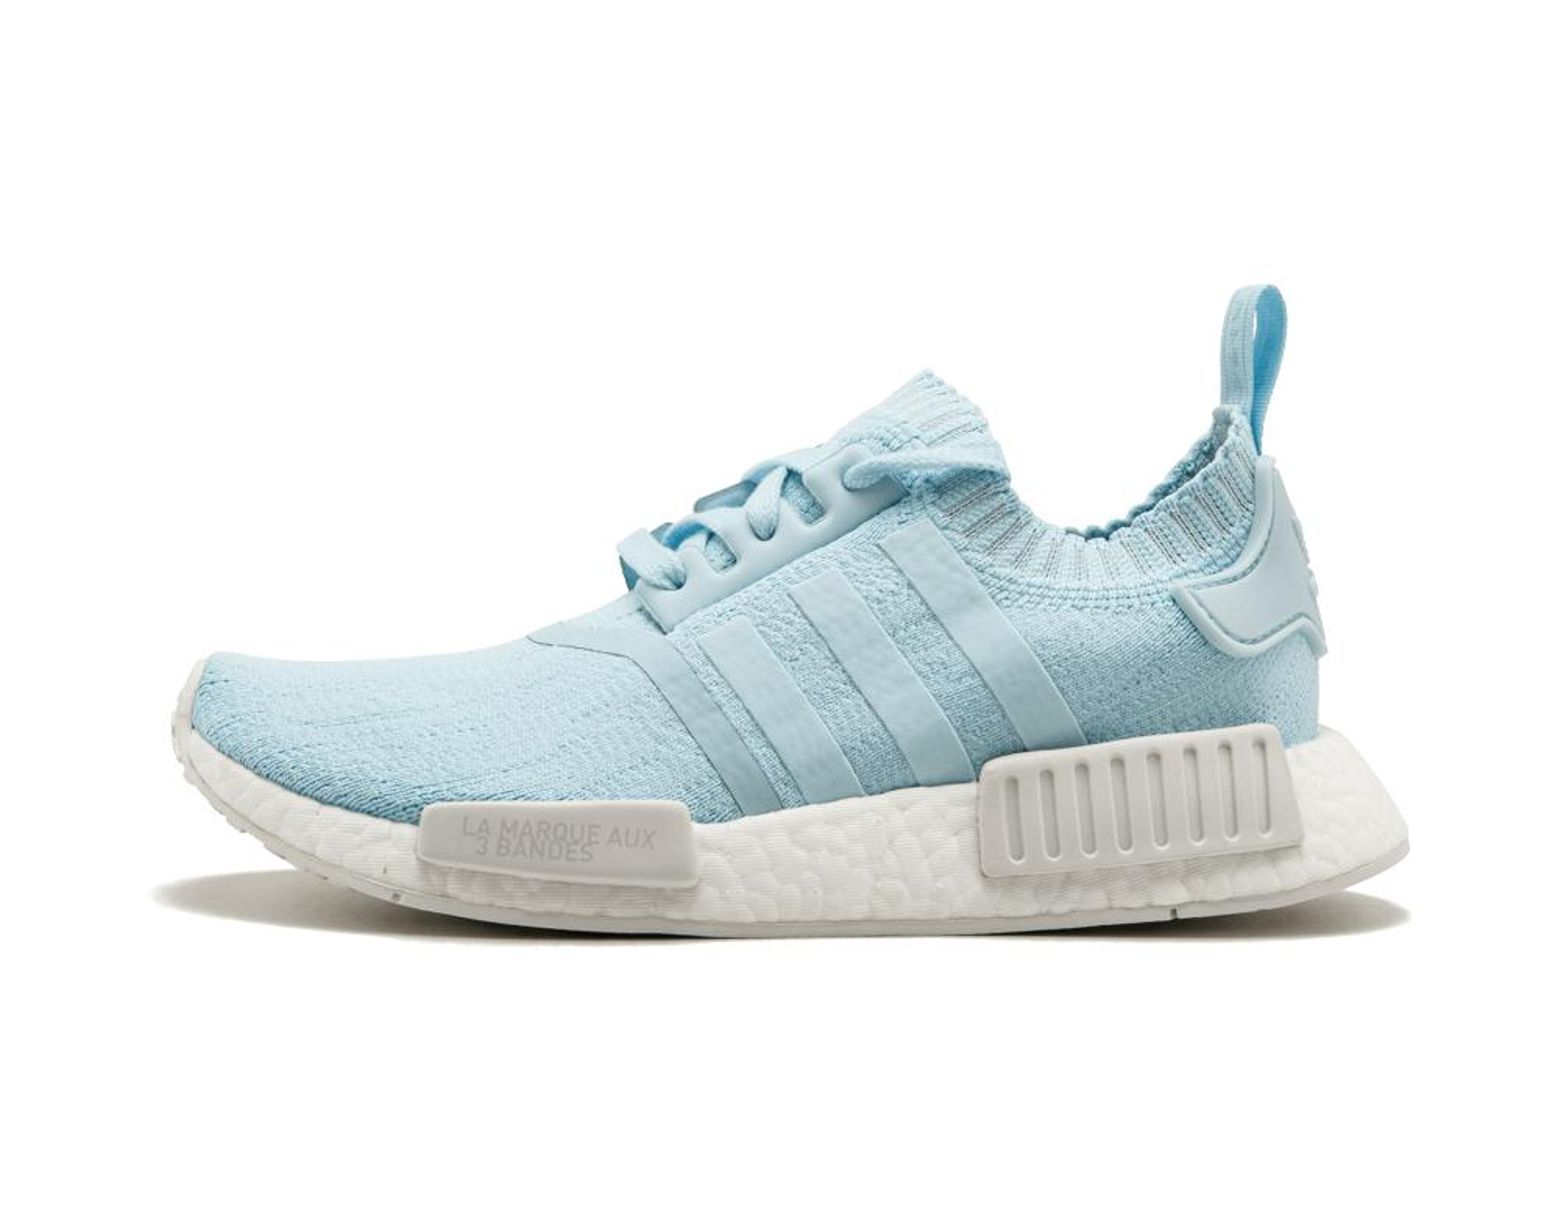 uk availability 10995 77f4d Blue Nmd R1 Womens Pk - Size 9w